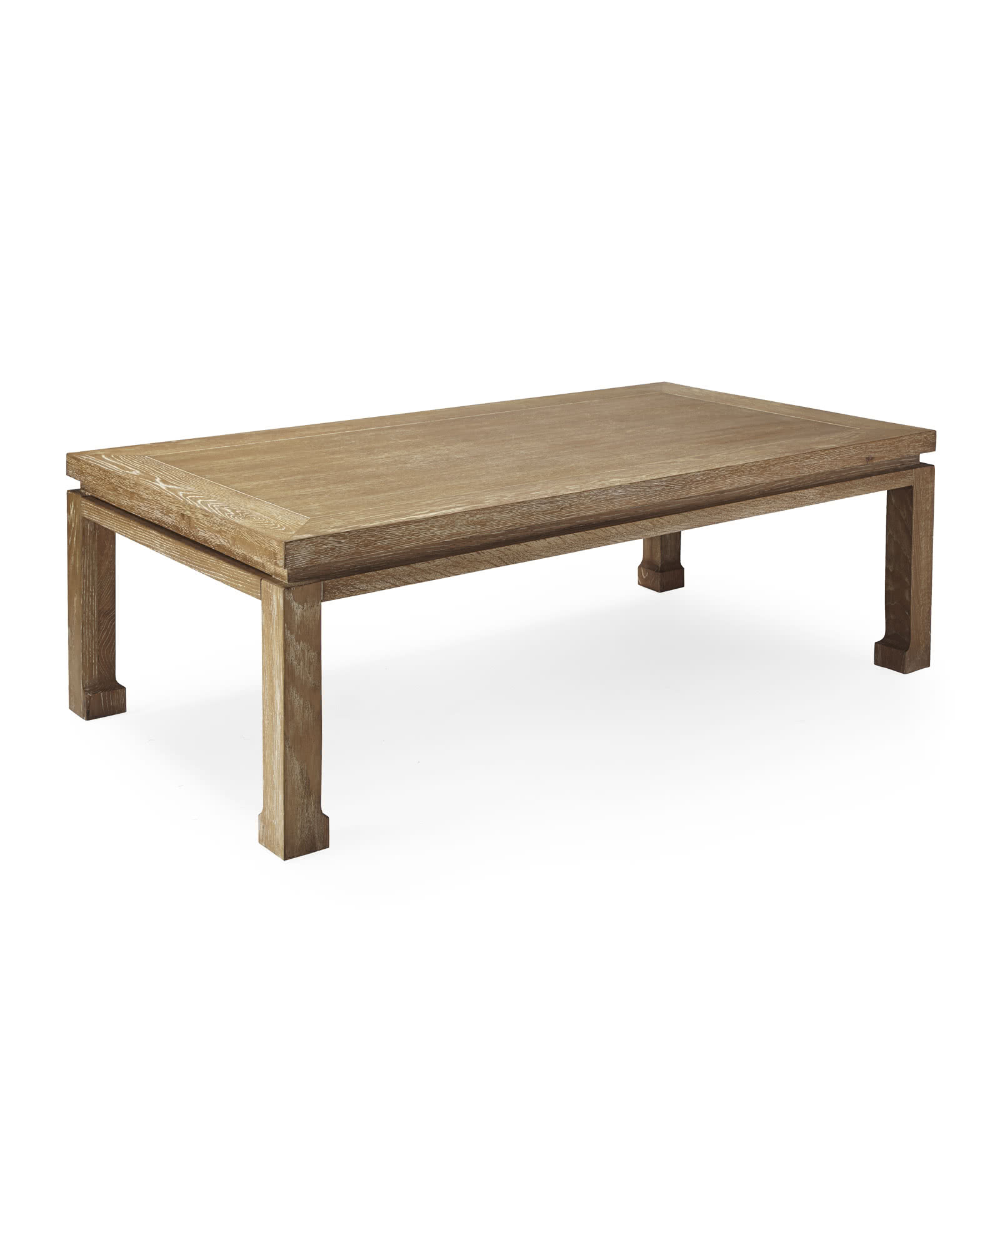 Reese Coffee Table Coffee Table Unique Coffee Table Furniture [ 1250 x 1000 Pixel ]